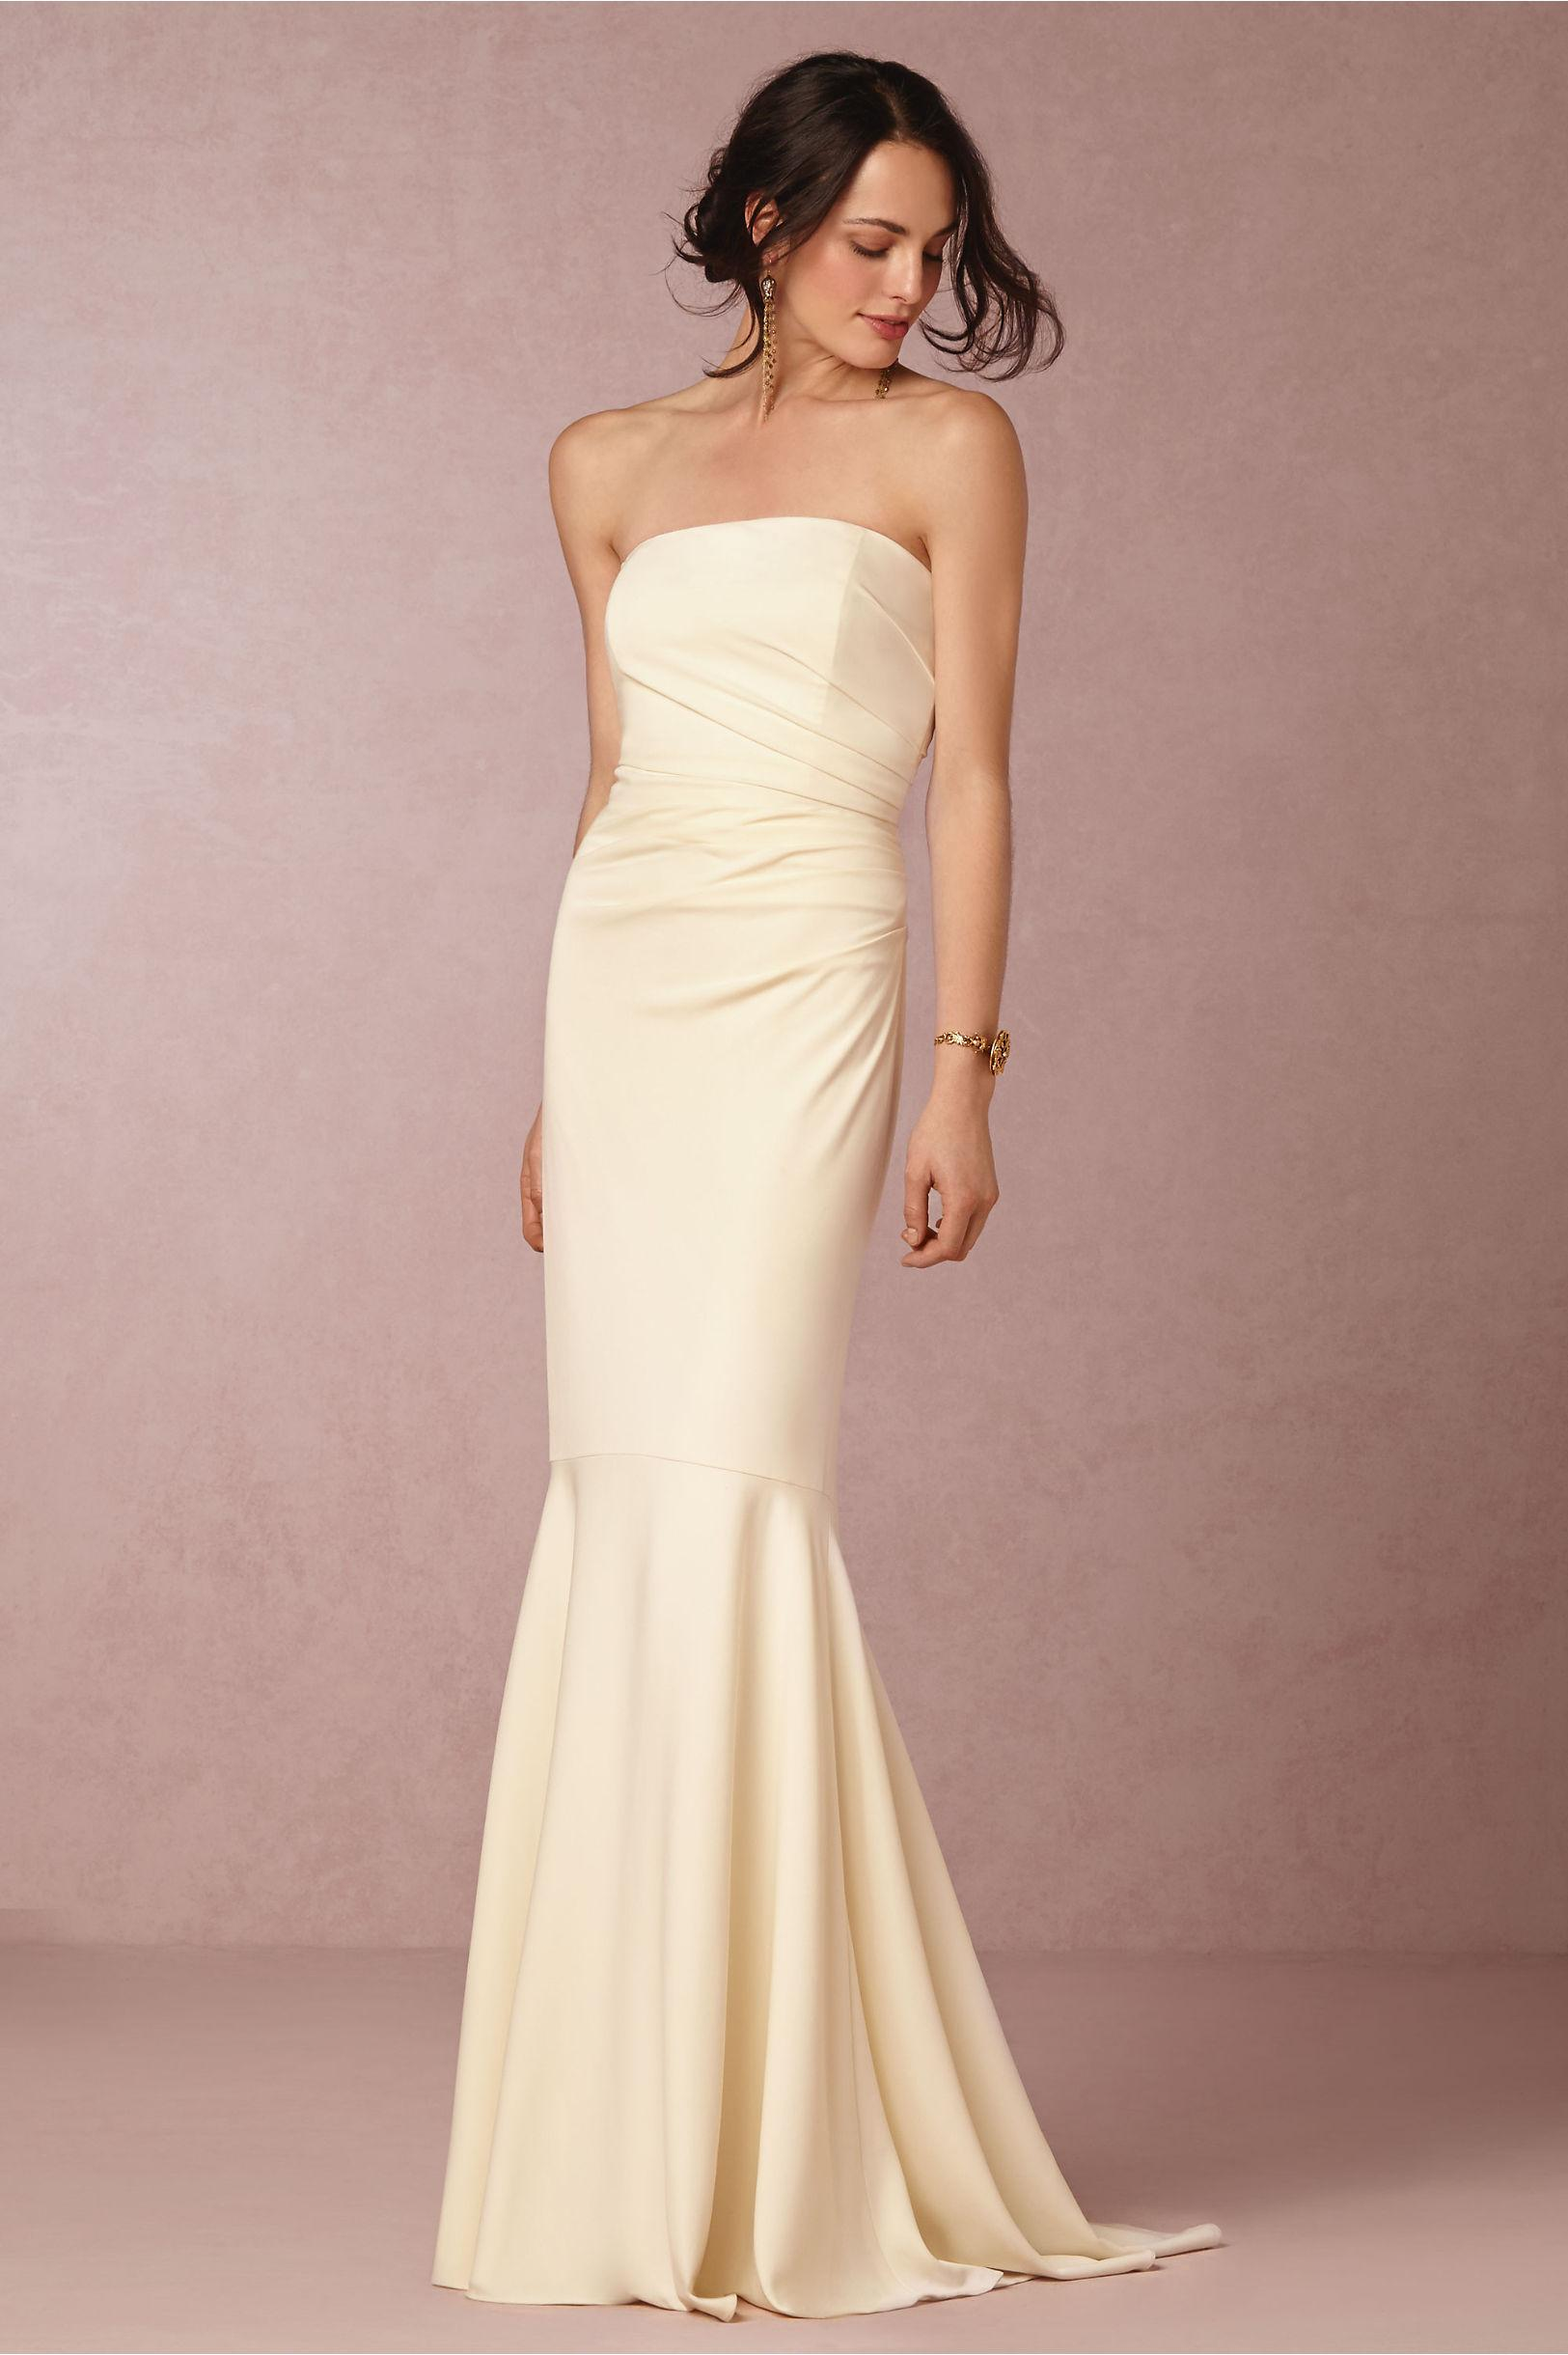 2015 Wedding Gowns Strapless Neckline Backless And Ruched Taffeta Sheath Dresses With Sweep Train Open Back Elegant Grecian Style